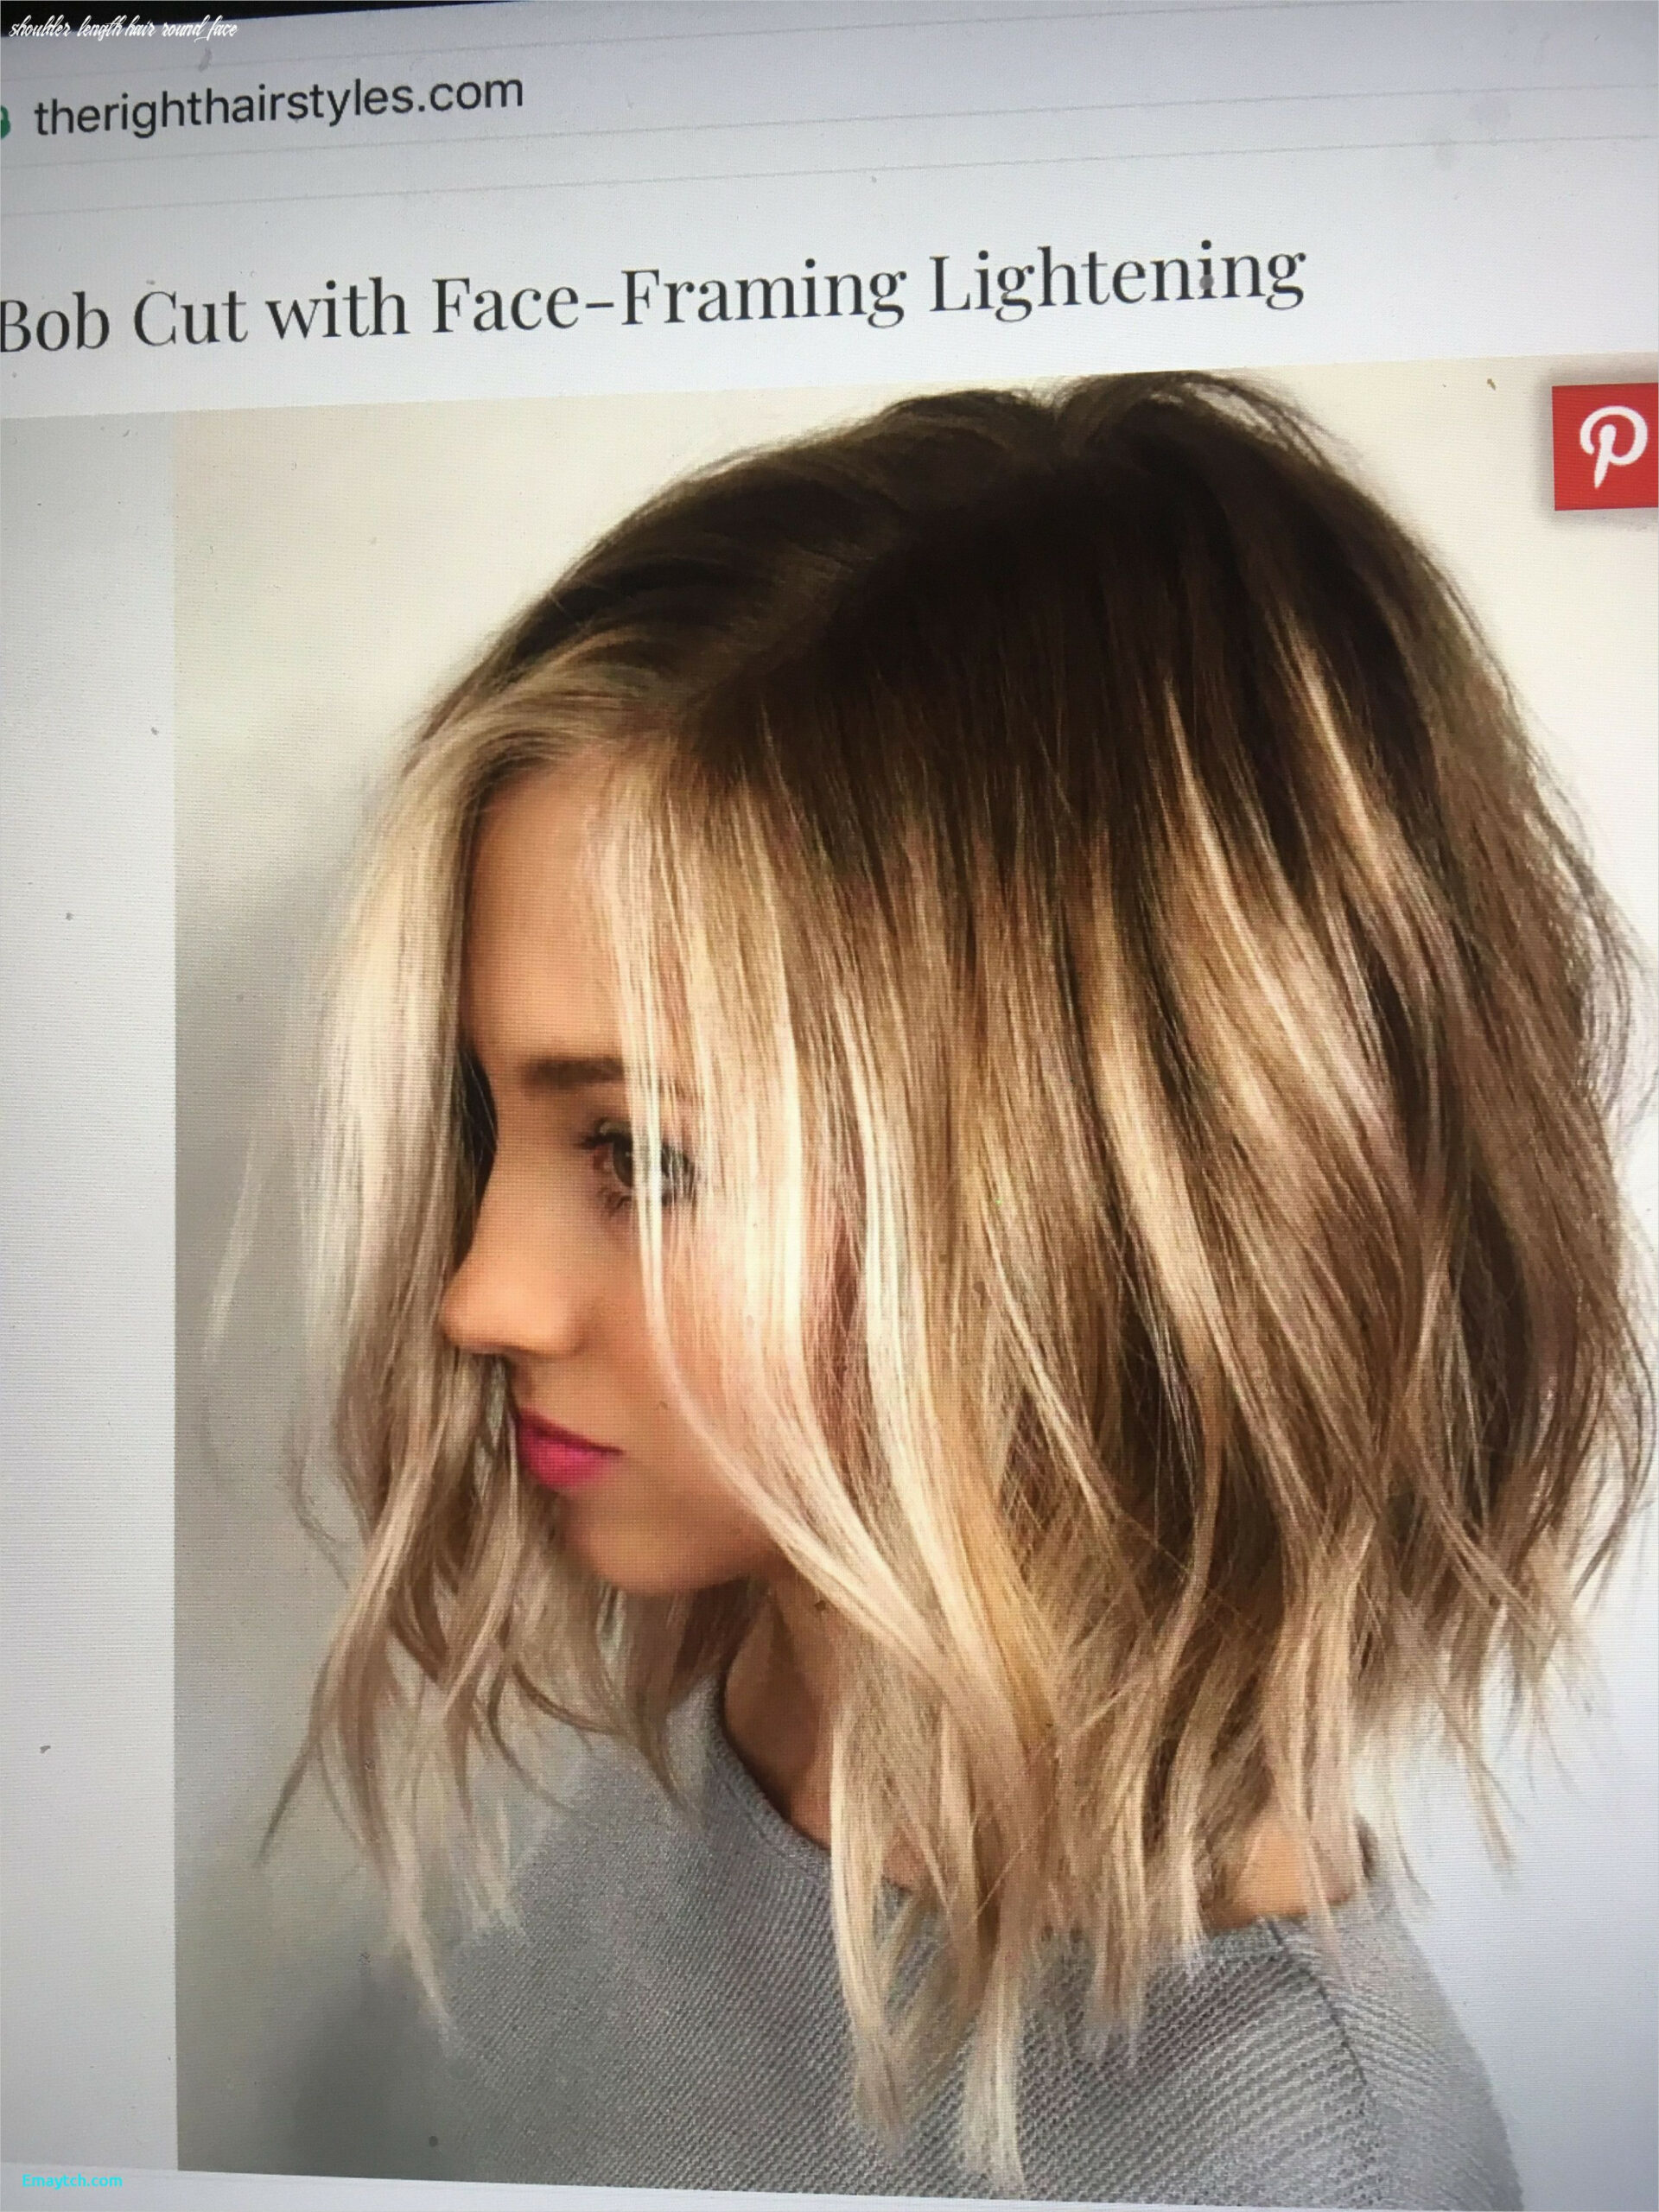 Pin on hair/accessories/nails shoulder length hair round face